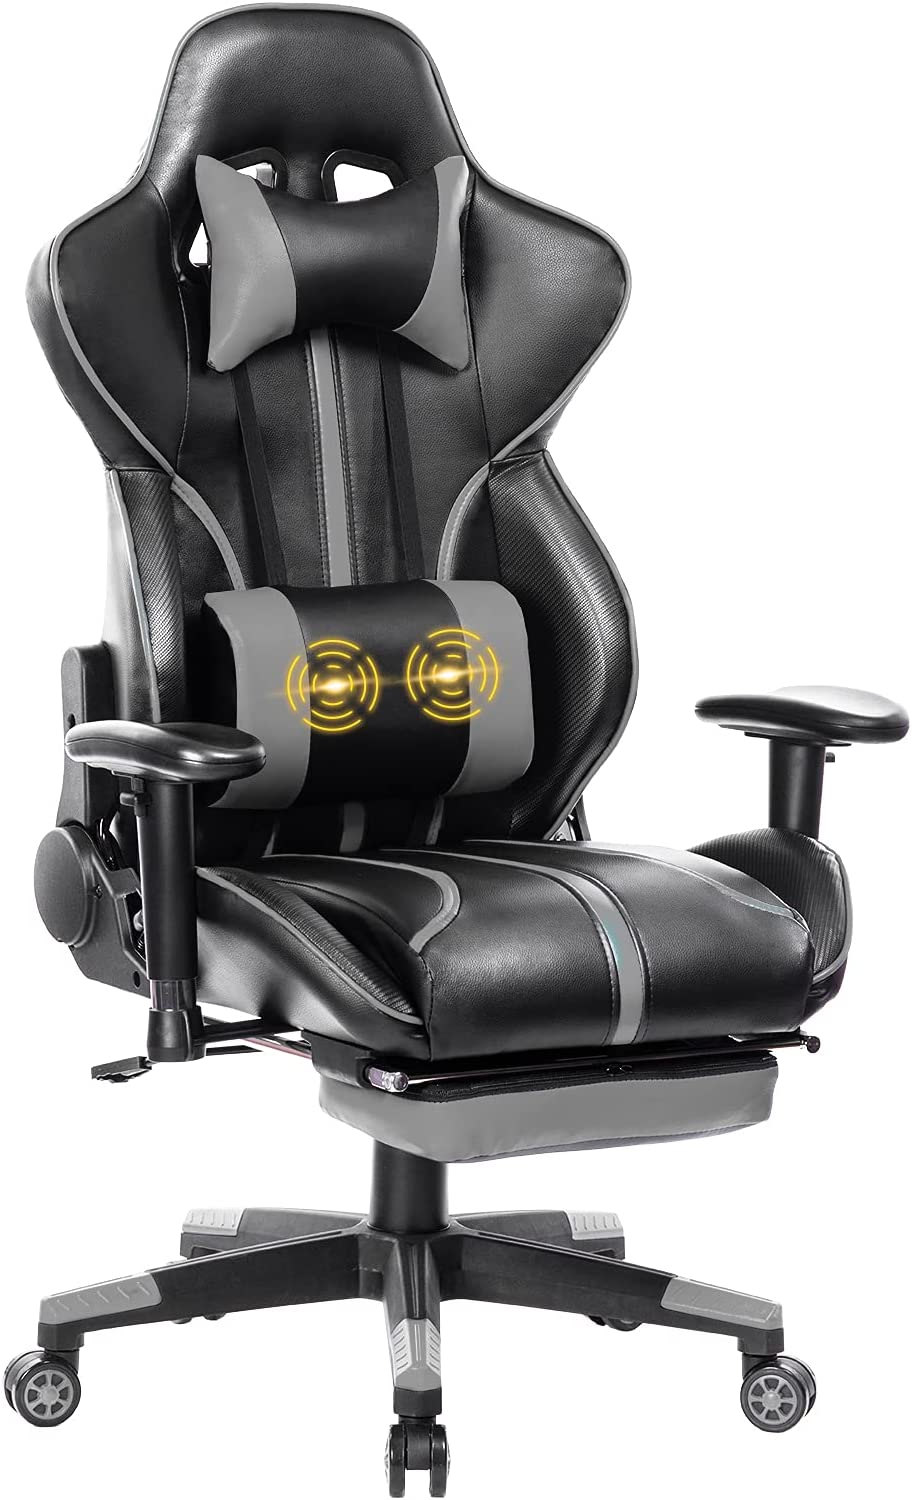 Blue Whale Gaming Chair Pc Computer, Ergonomic Office Chair Canada